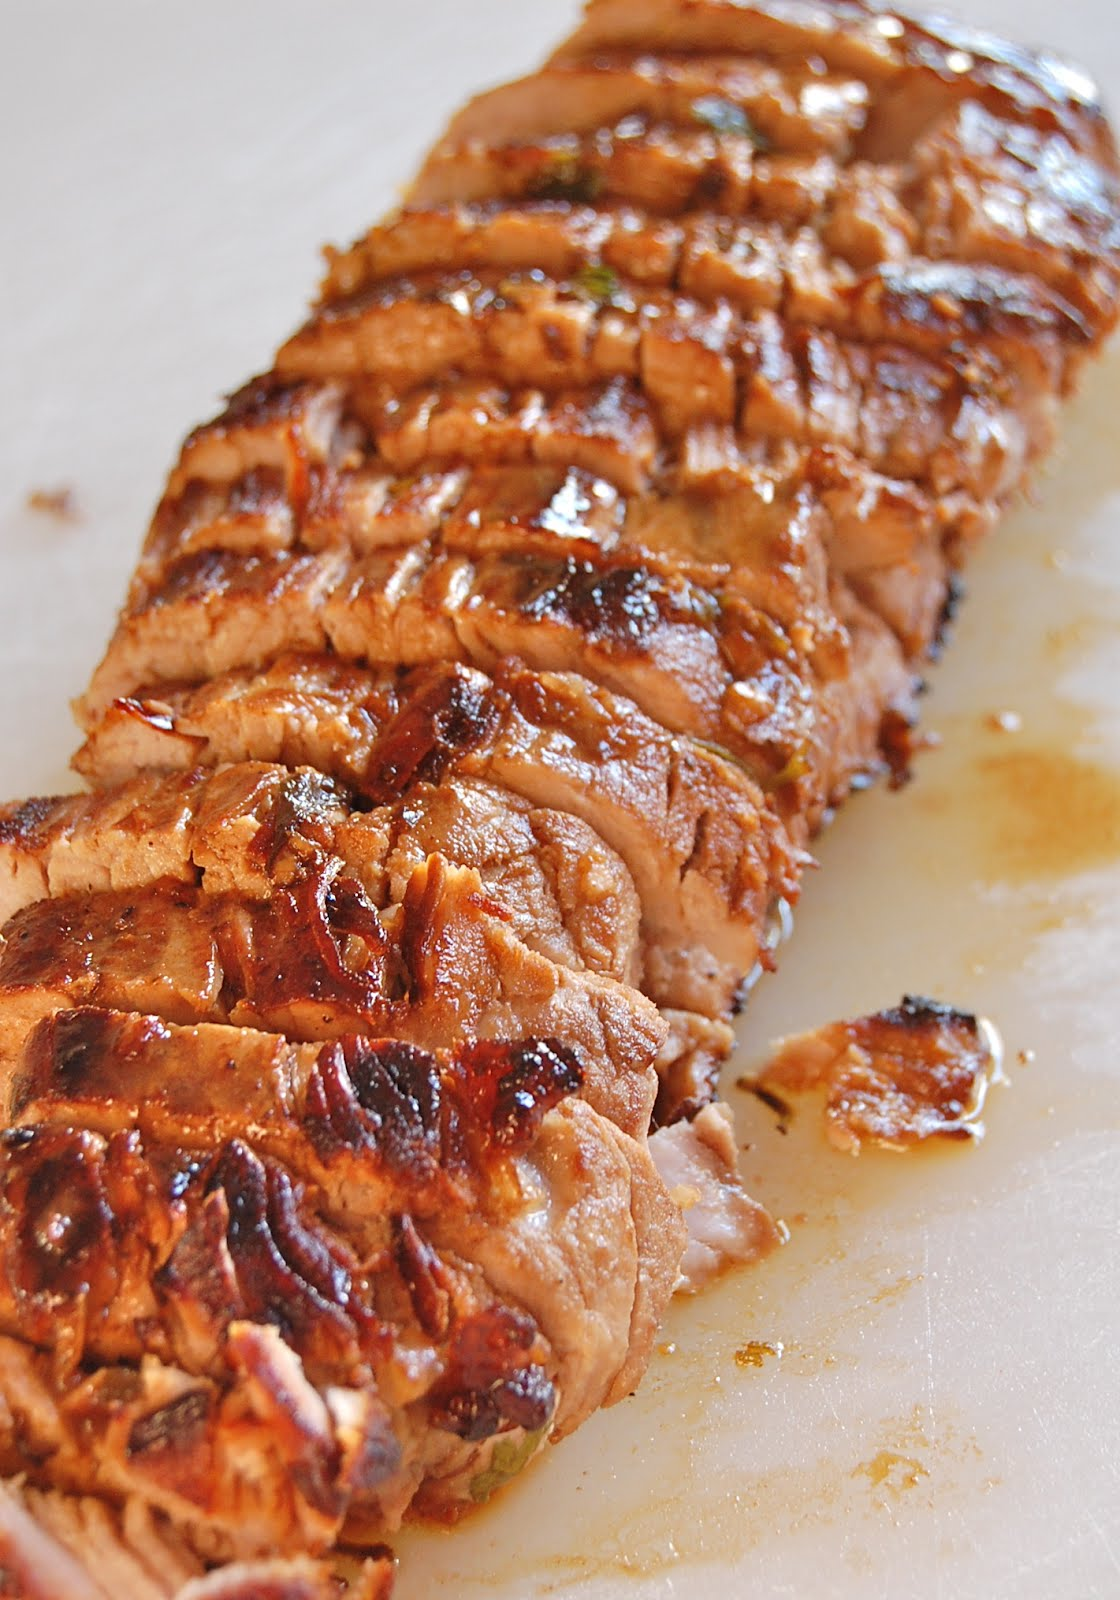 Marinated pork loin recipes